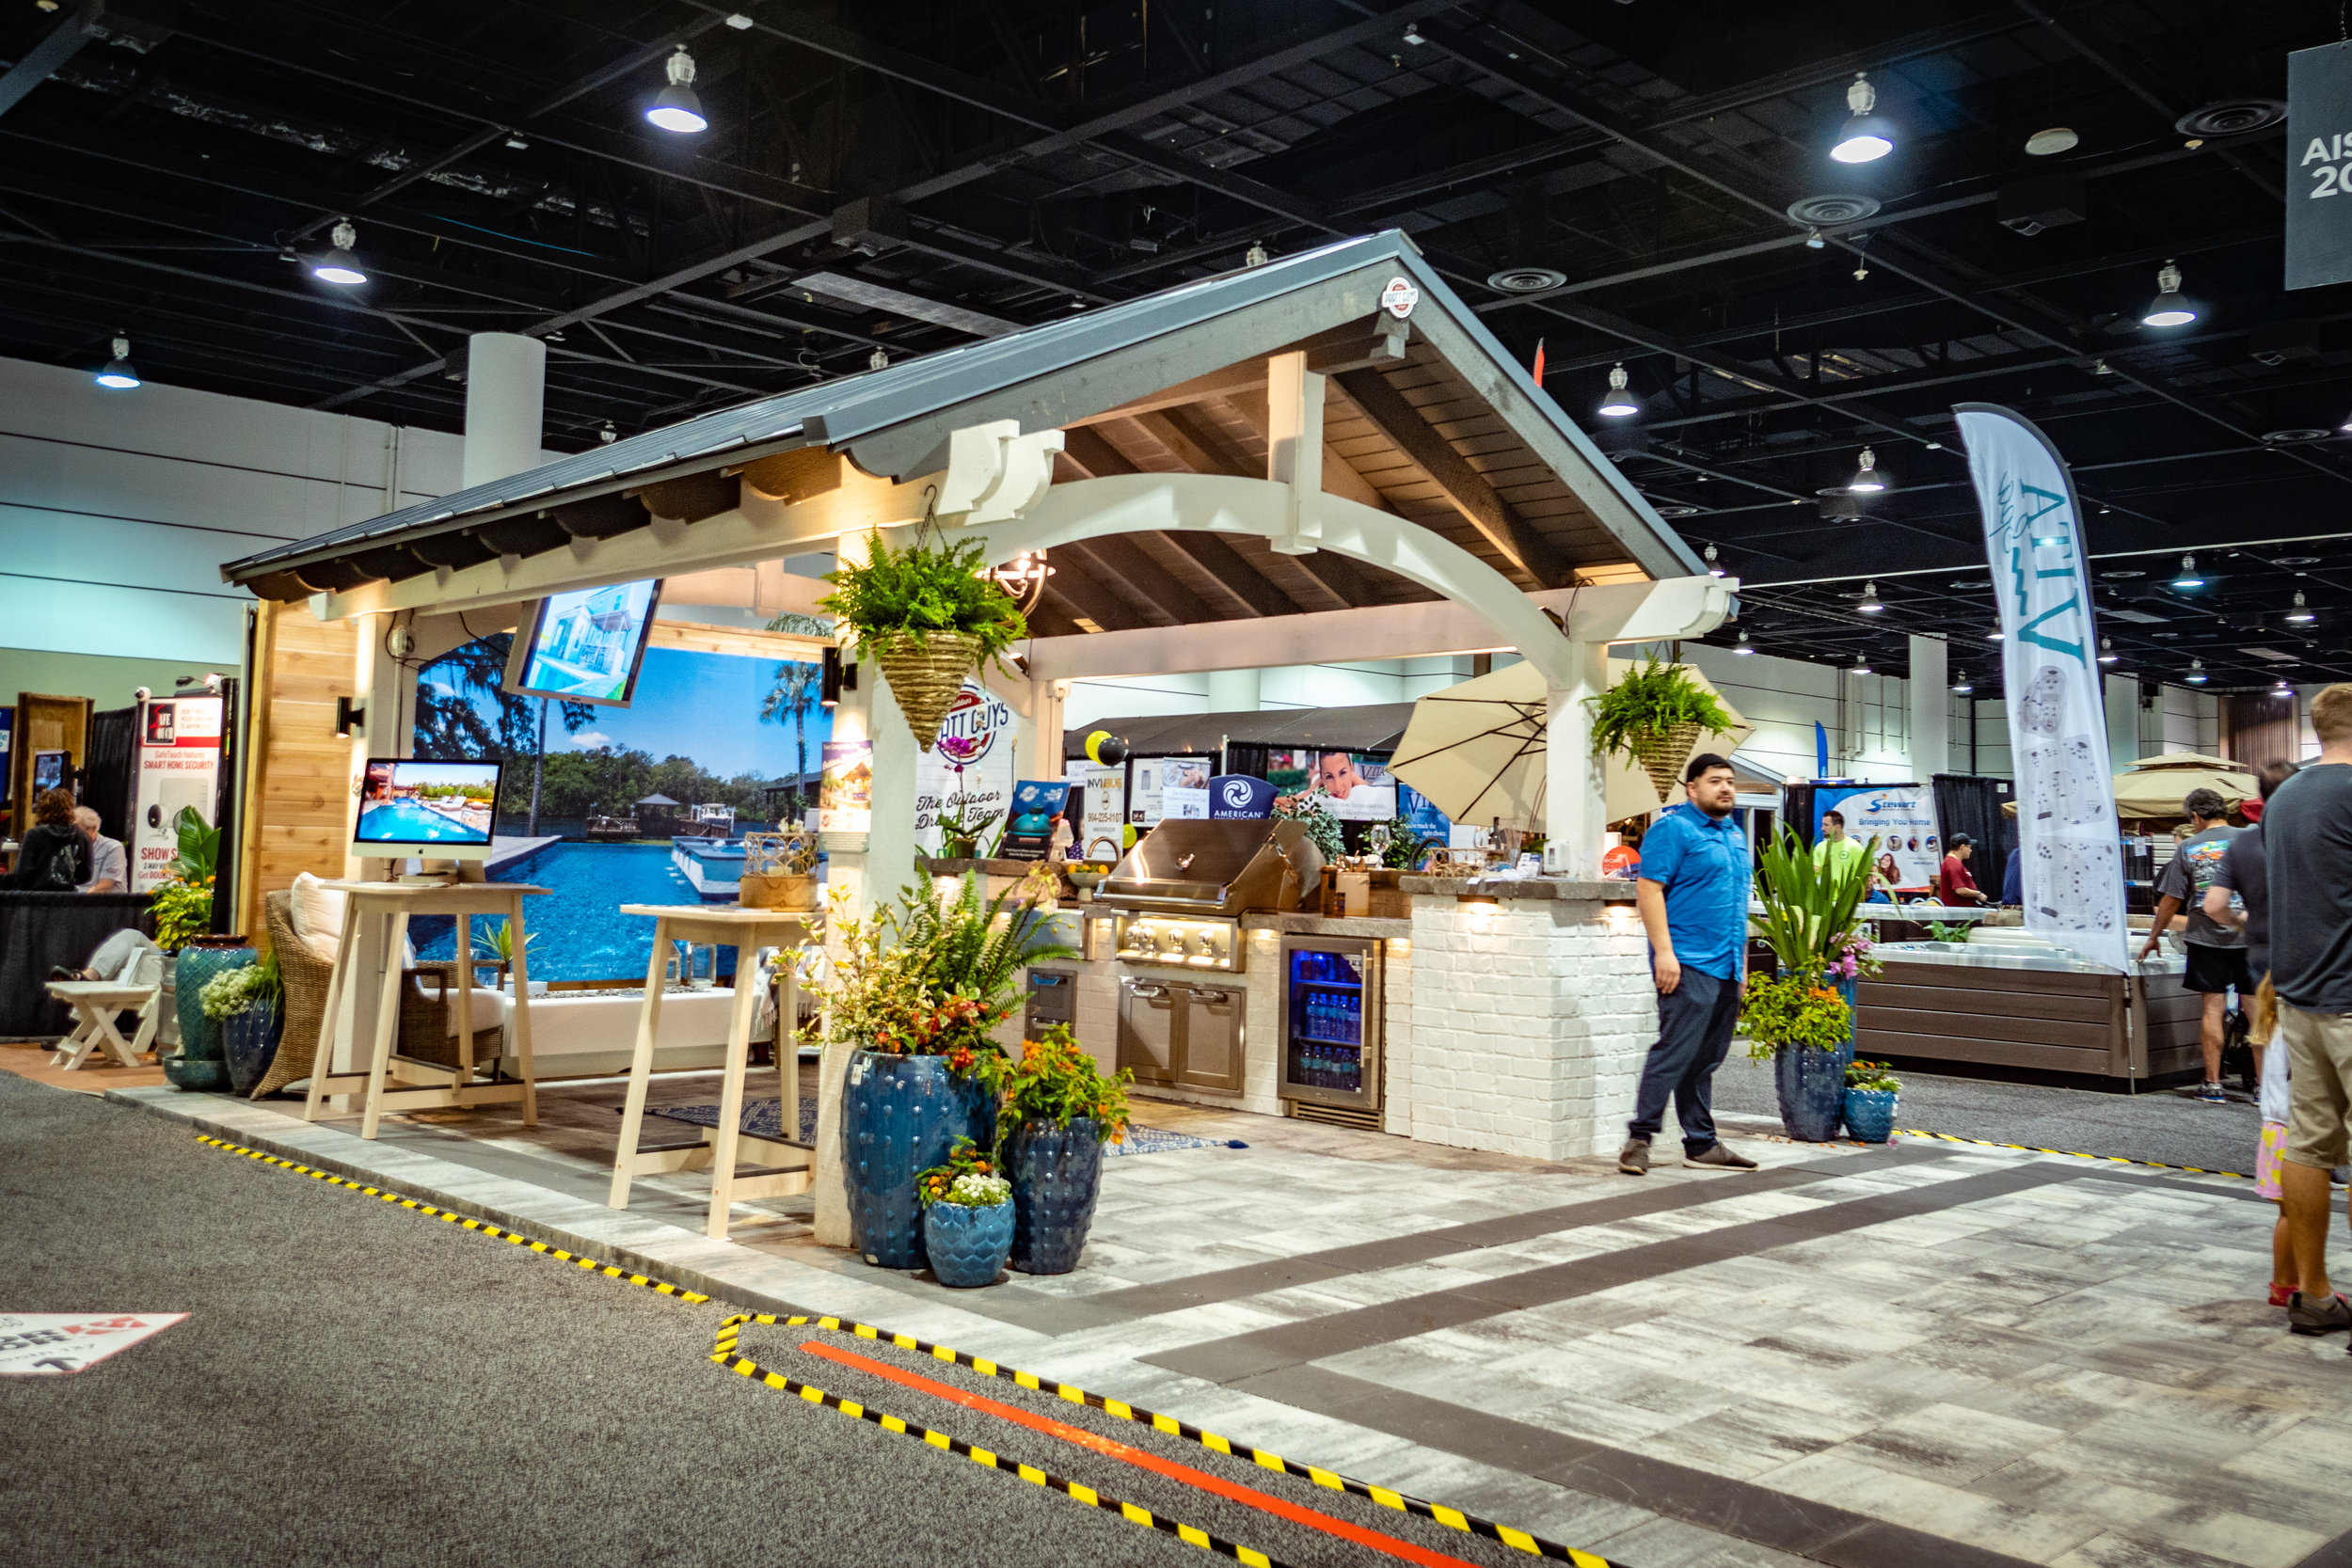 A moment during the 2019 Spring Jacksonville Home + Patio Show aka #HomeAndPrattio Show on 3/3/19 during the 4-day event that took place between February 28 and March 3, 2019. Photo copyright Pratt Guys 2019